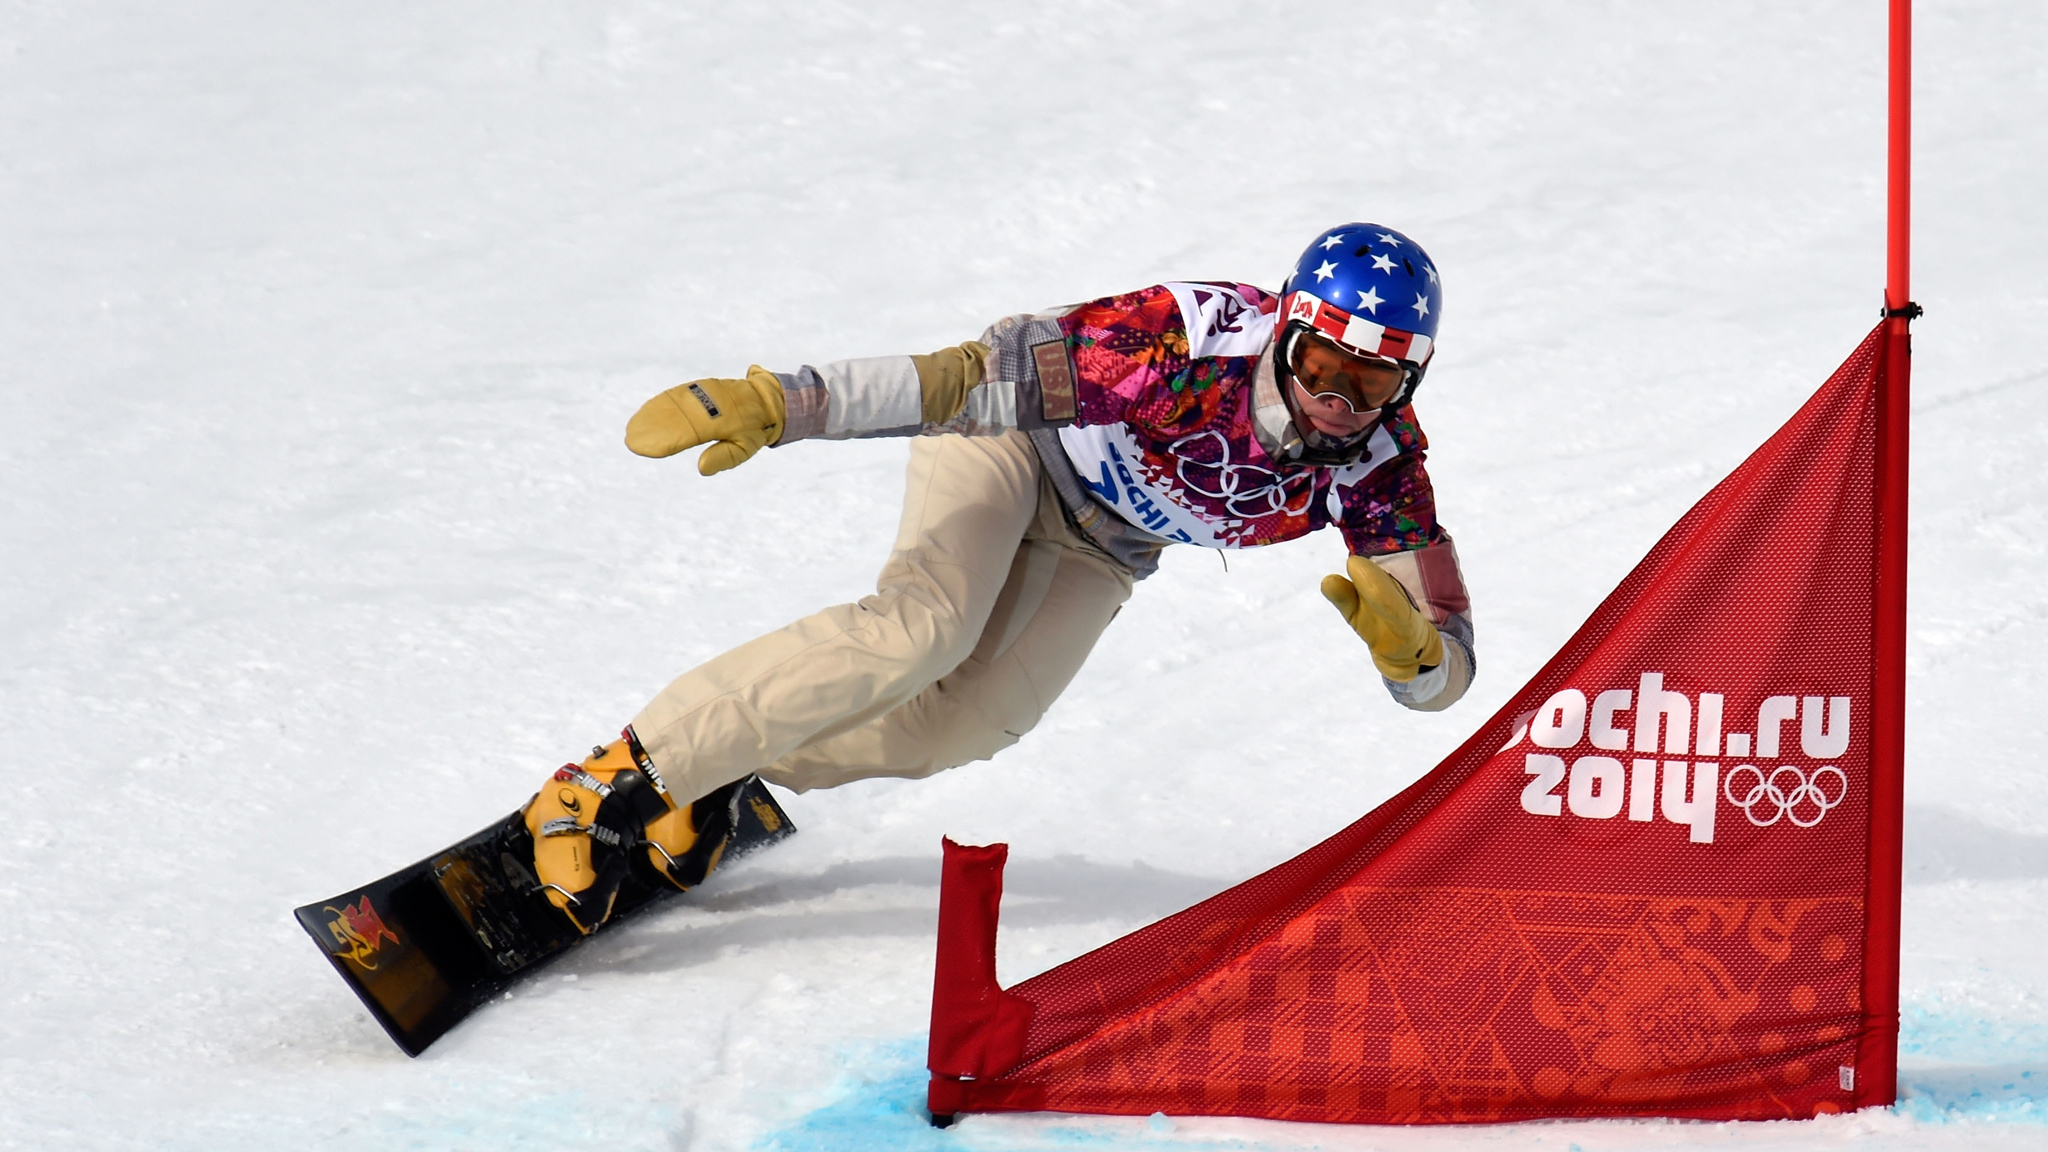 Alpine racer Justin Reiter will be the last snowboarder on Team USA to compete for a medal in Russia. Snowboard slalom takes place Saturday at 10 a.m. Sochi time.